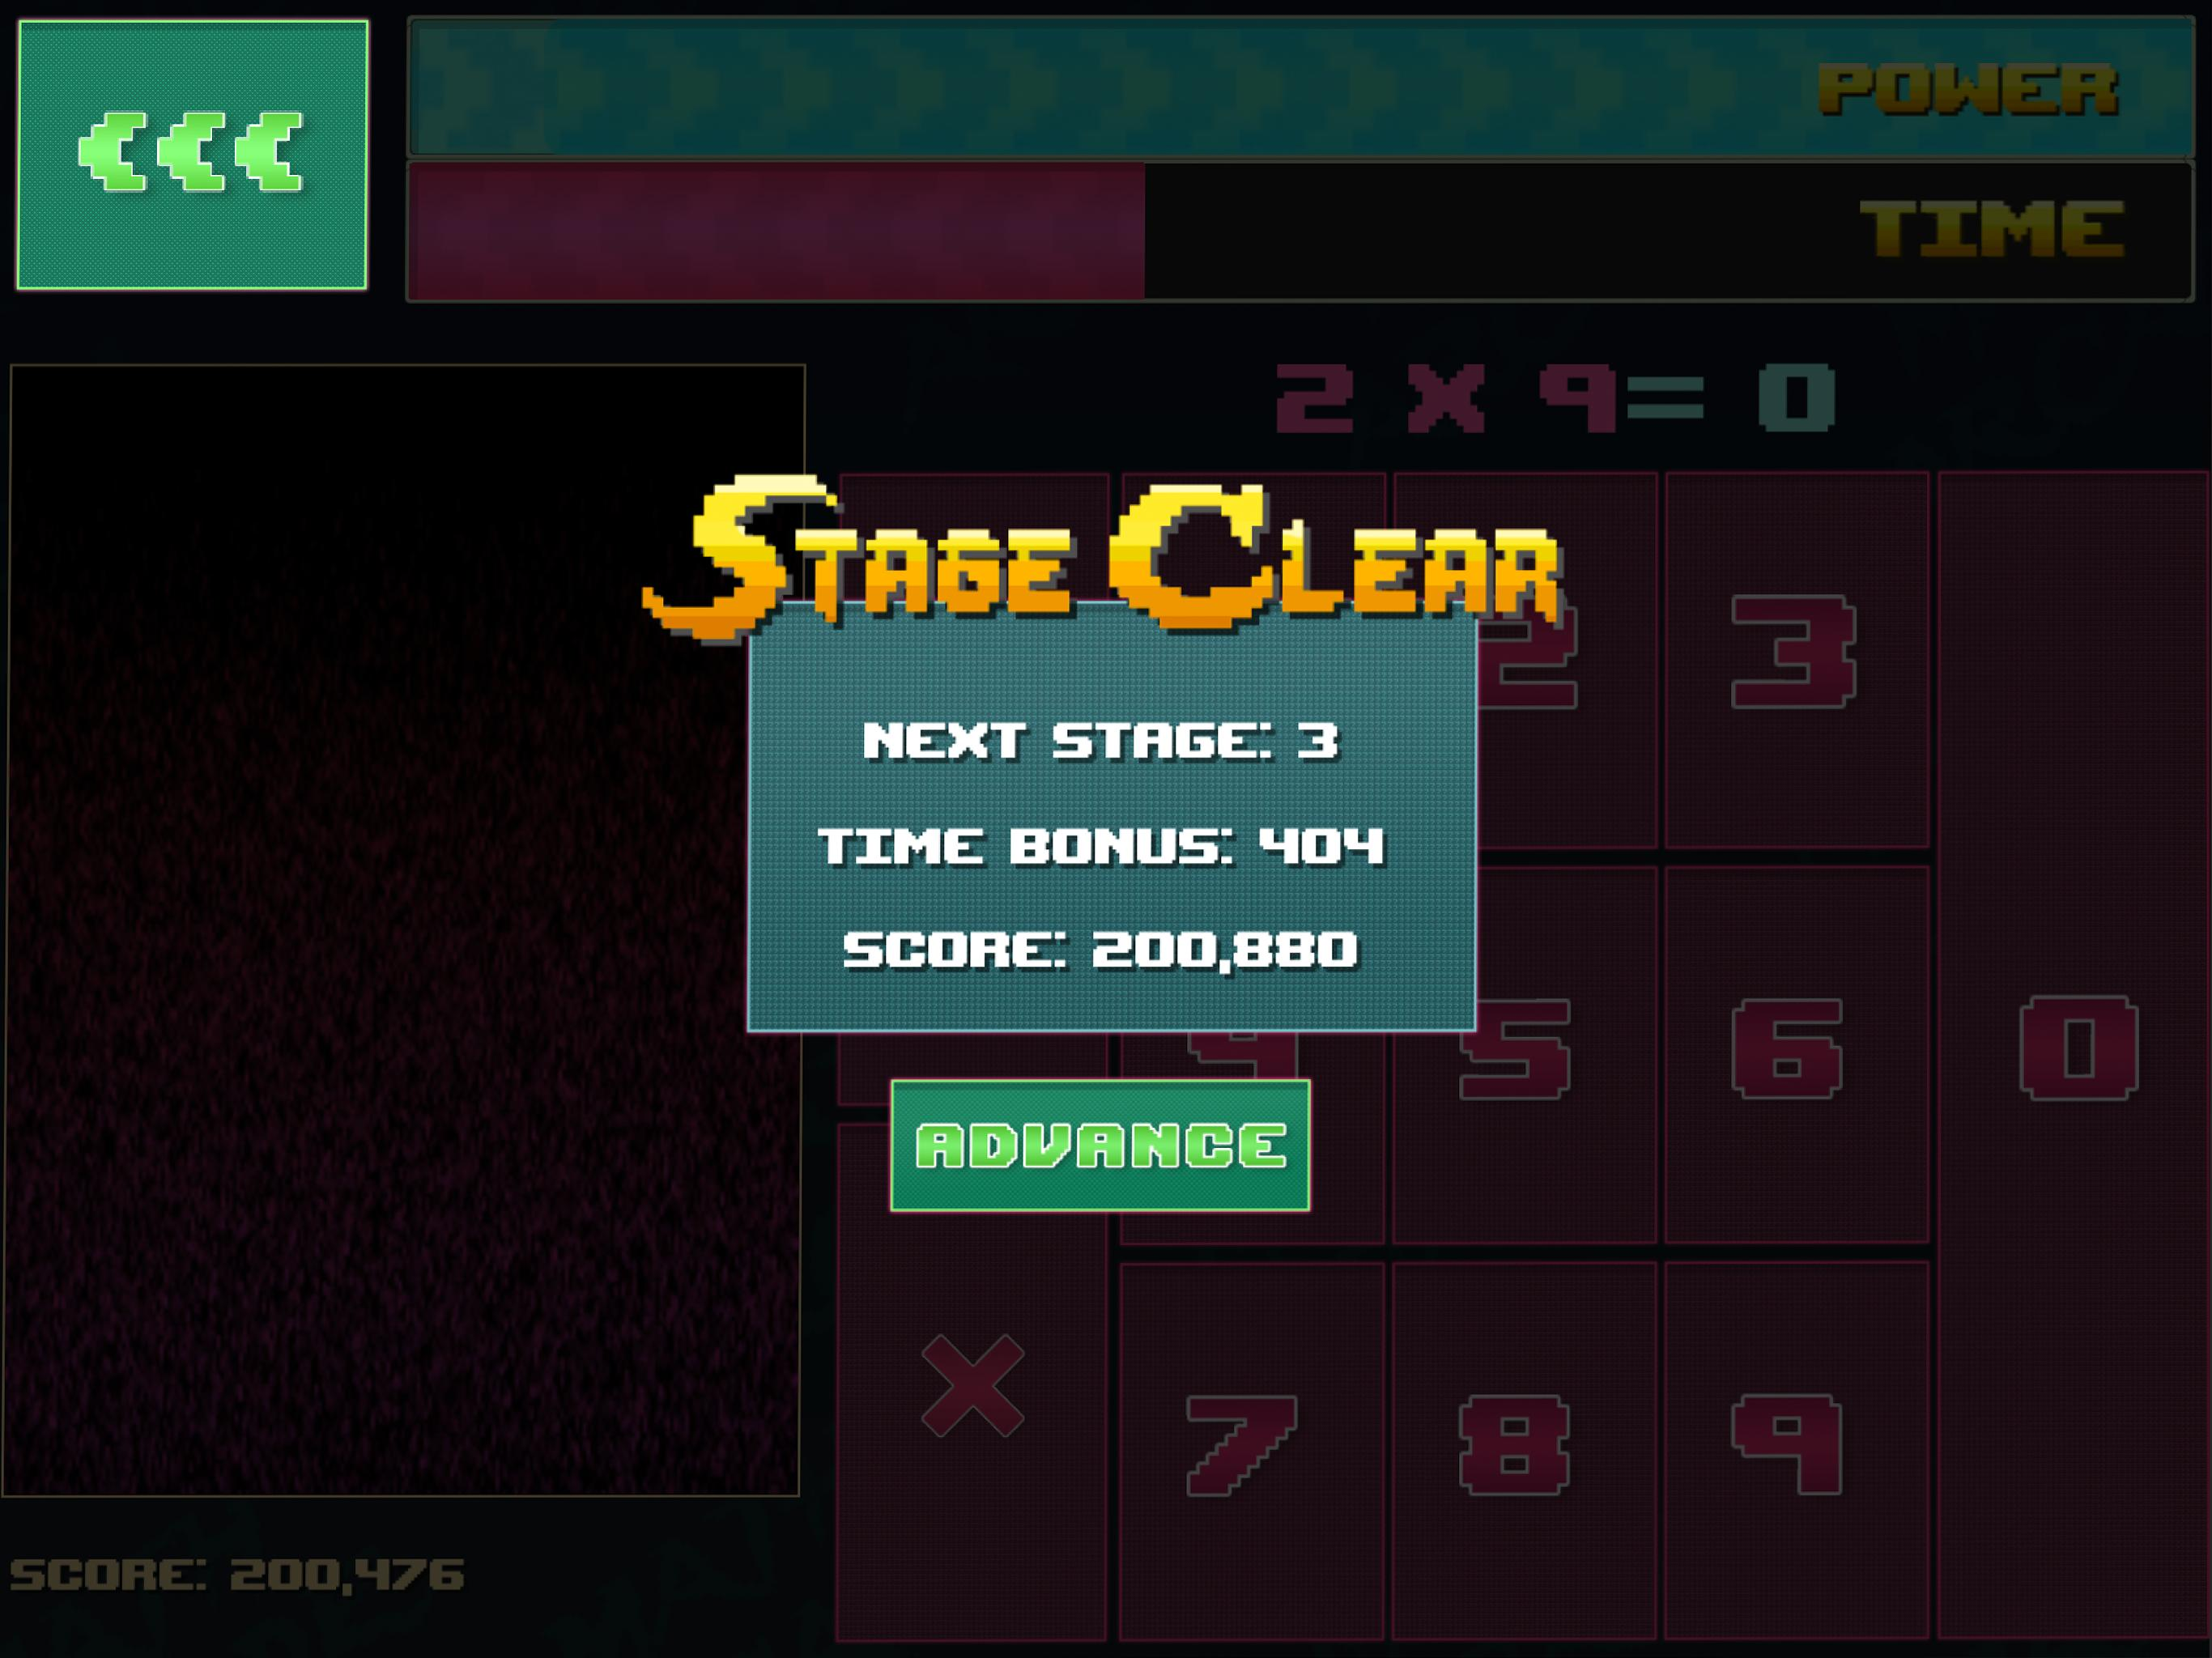 Math Arcade - Fast Math for Android - APK Download